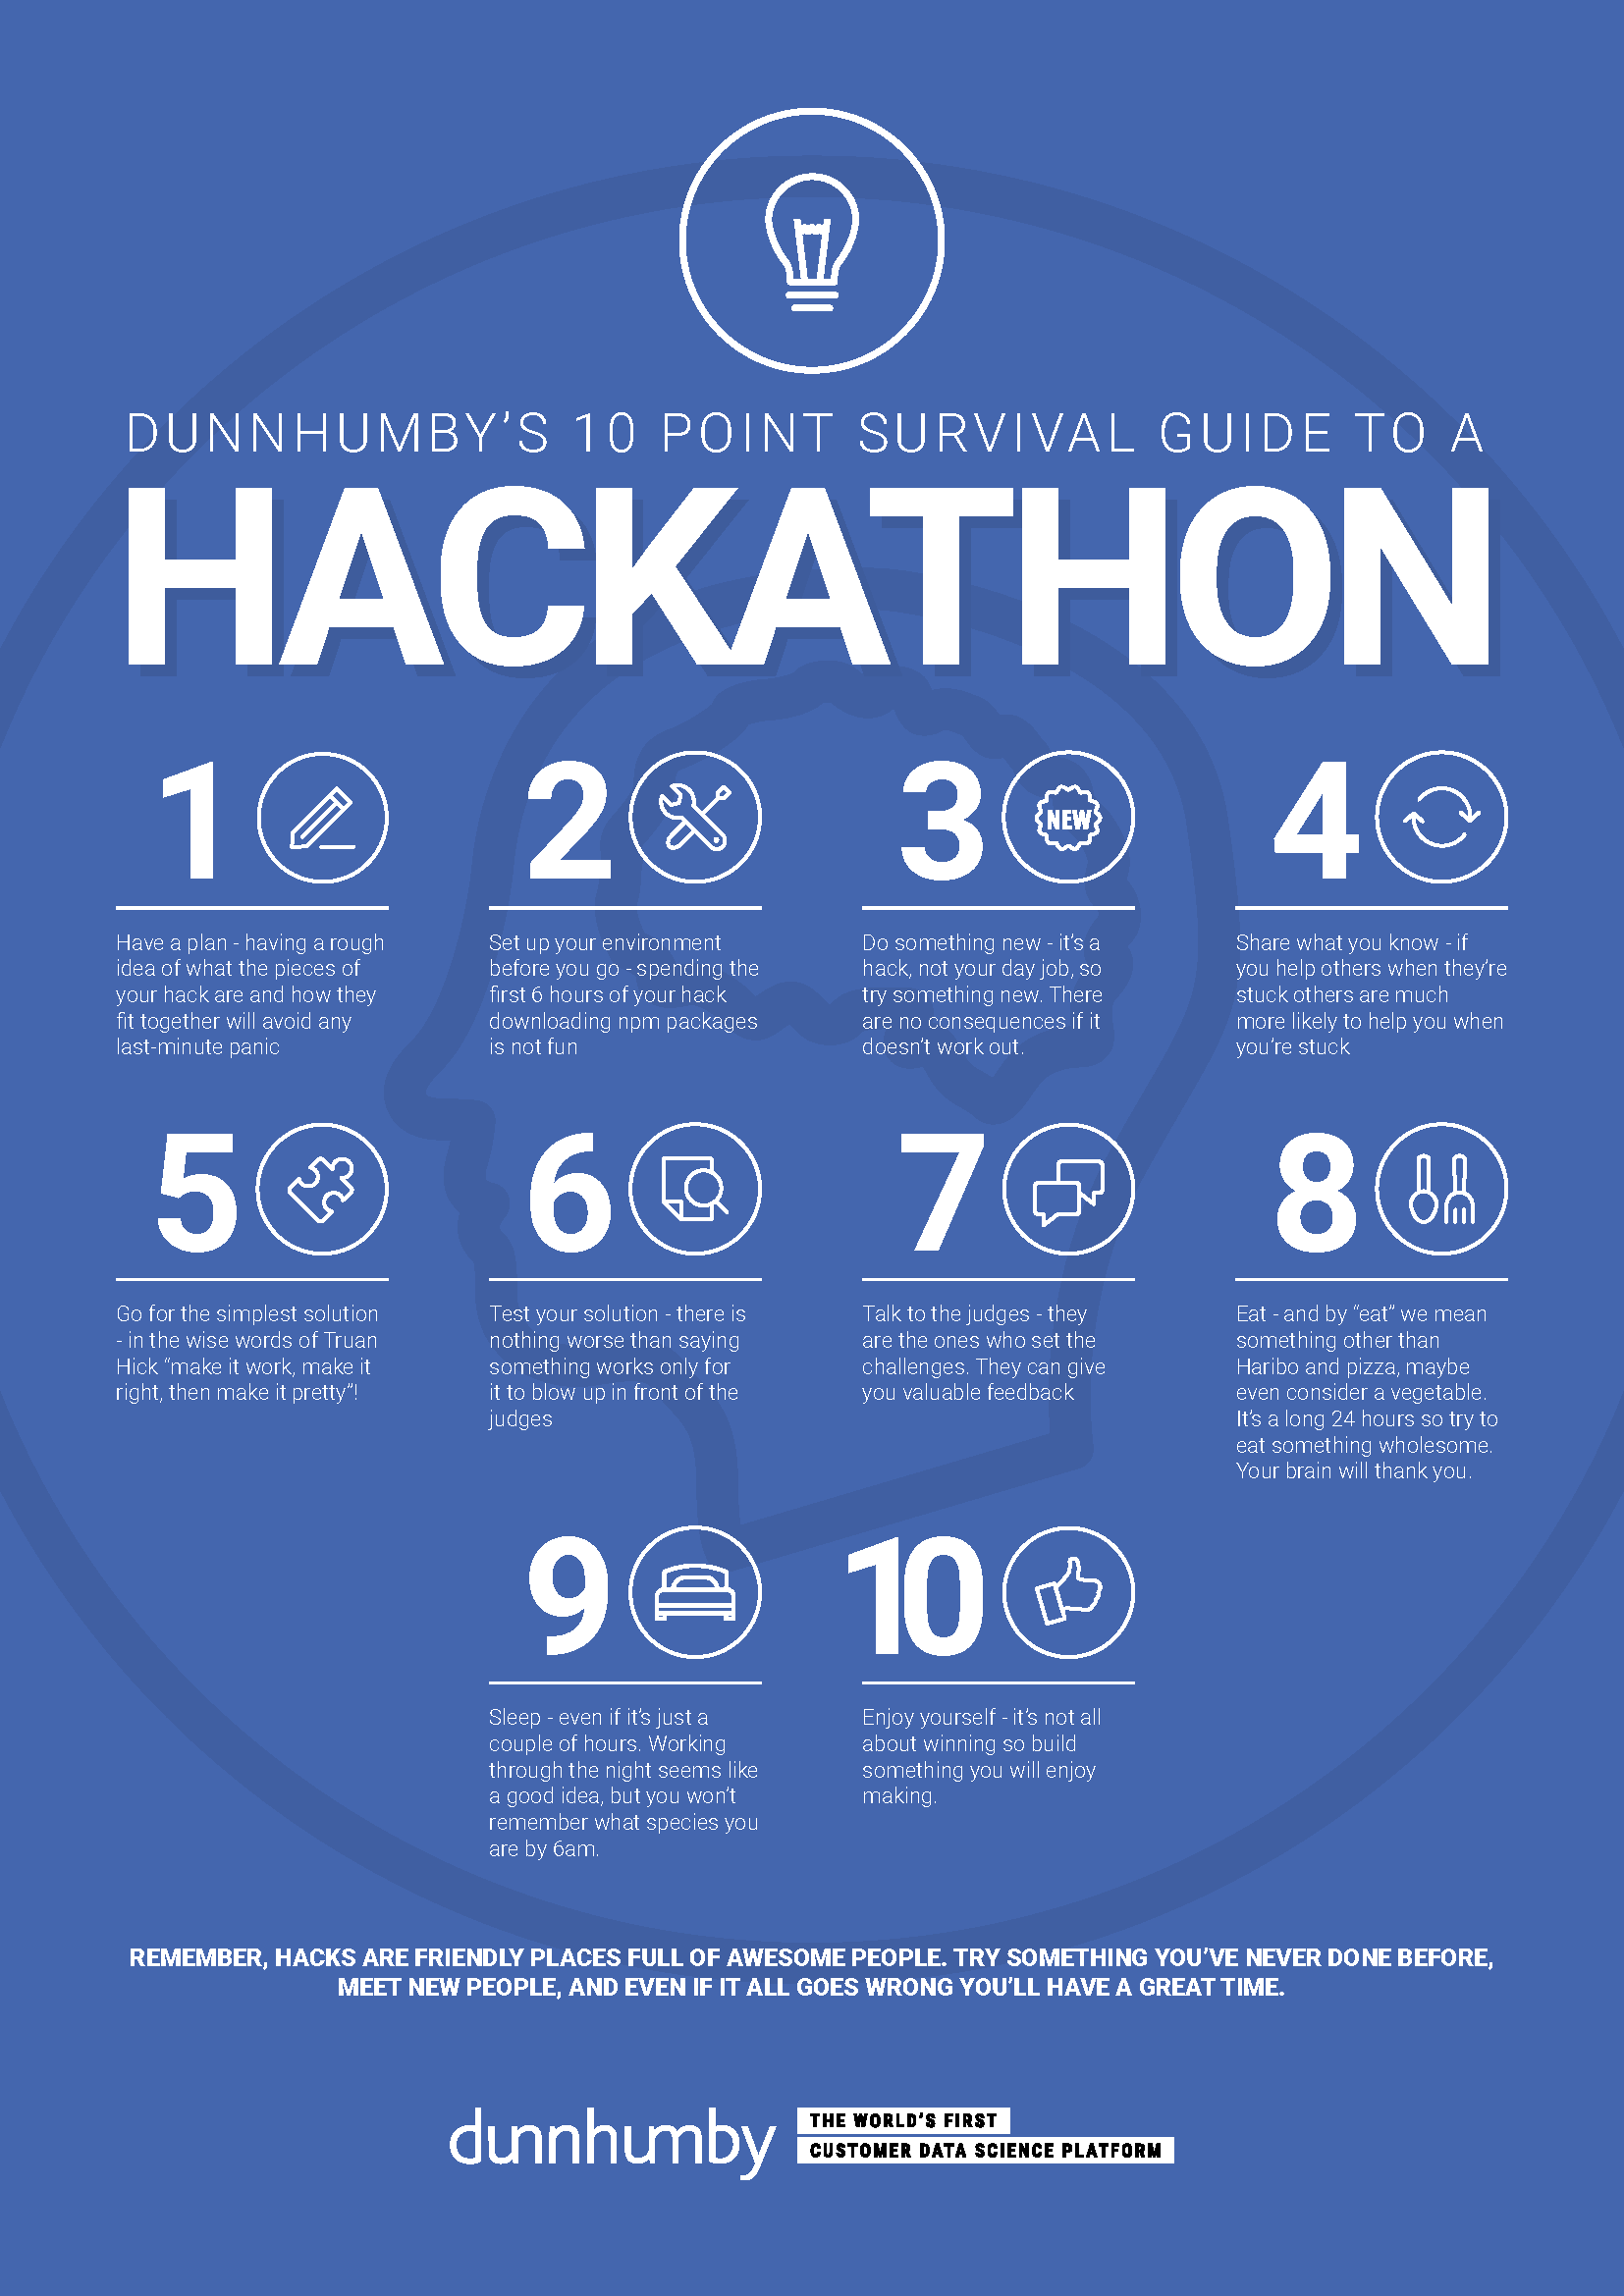 dunnhumby - How to survive a Hackathon